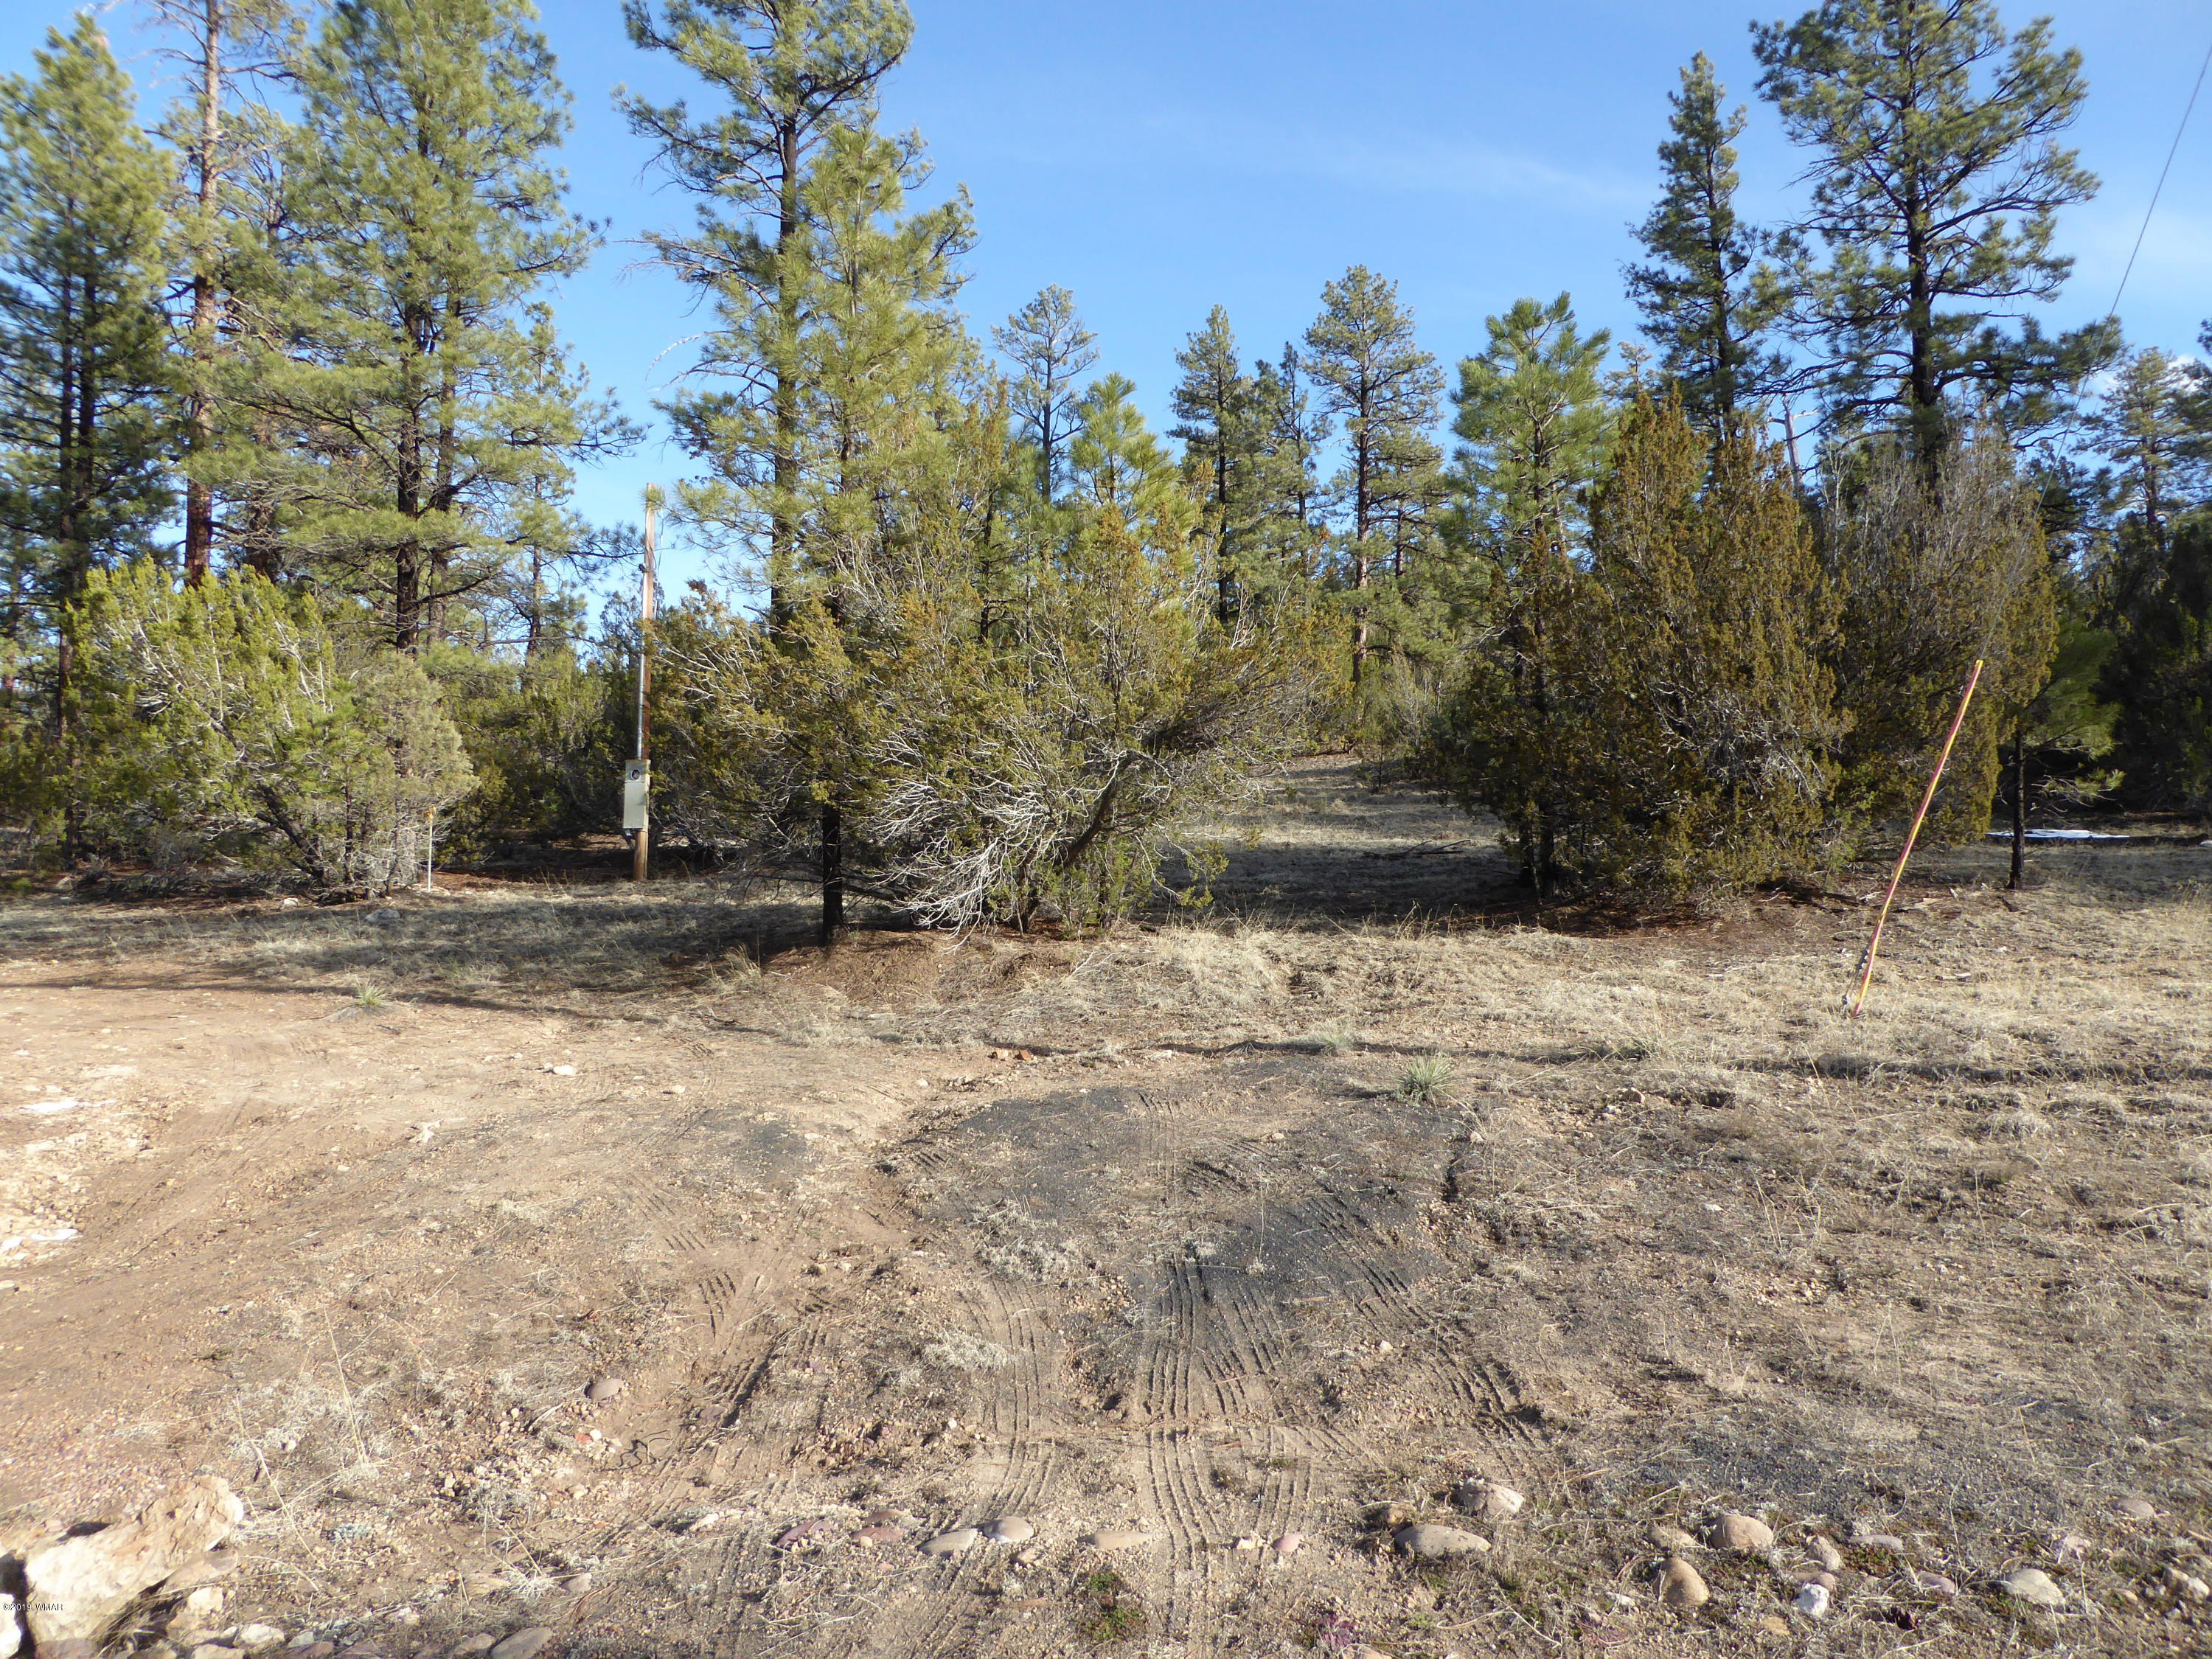 very nice 2.36 Acre lot with tall pines and junipers on the property. This property has great views and several spots for your site built home also  you can buy the 2.55 acres behind this one that backs up to the national Forest for a total of 4.91 acres. These properties are a must see.